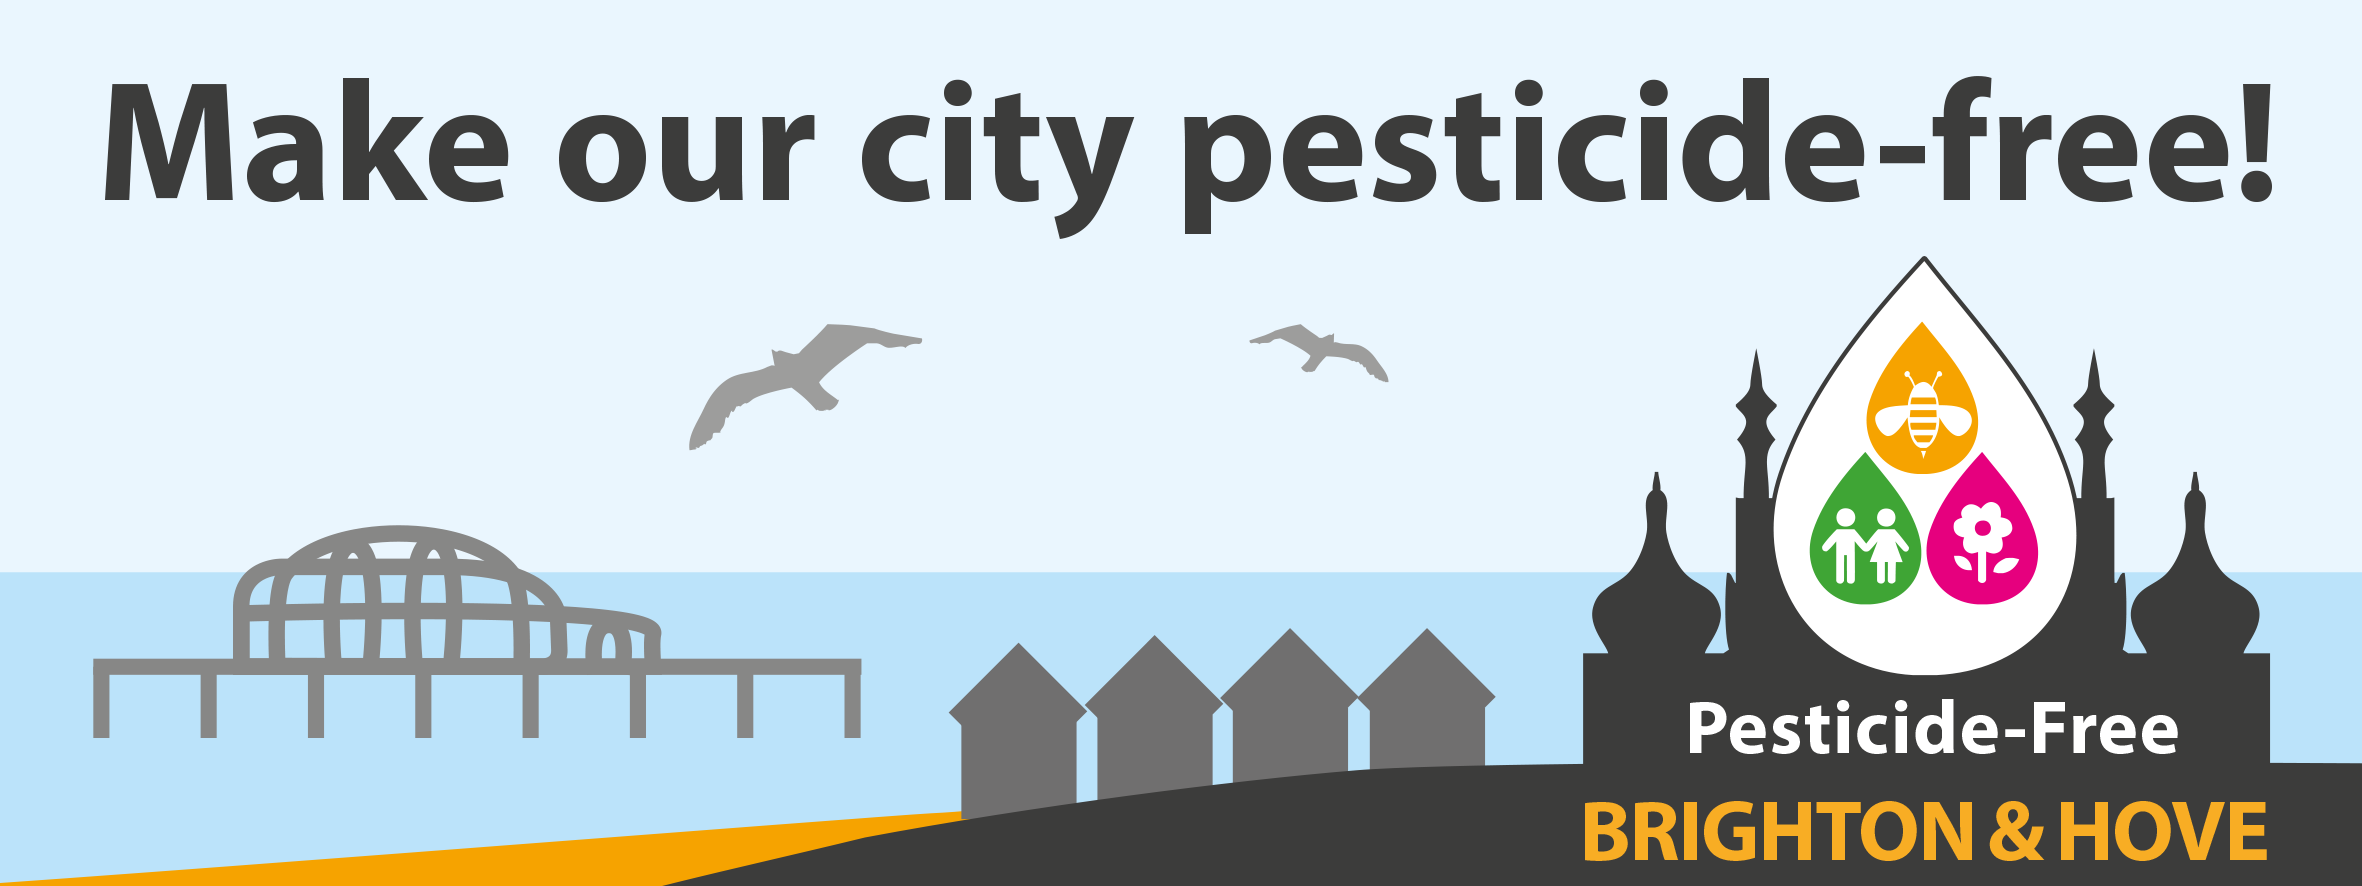 Ask candidates in the Brighton and Hove Council Elections to make our city pesticide-free